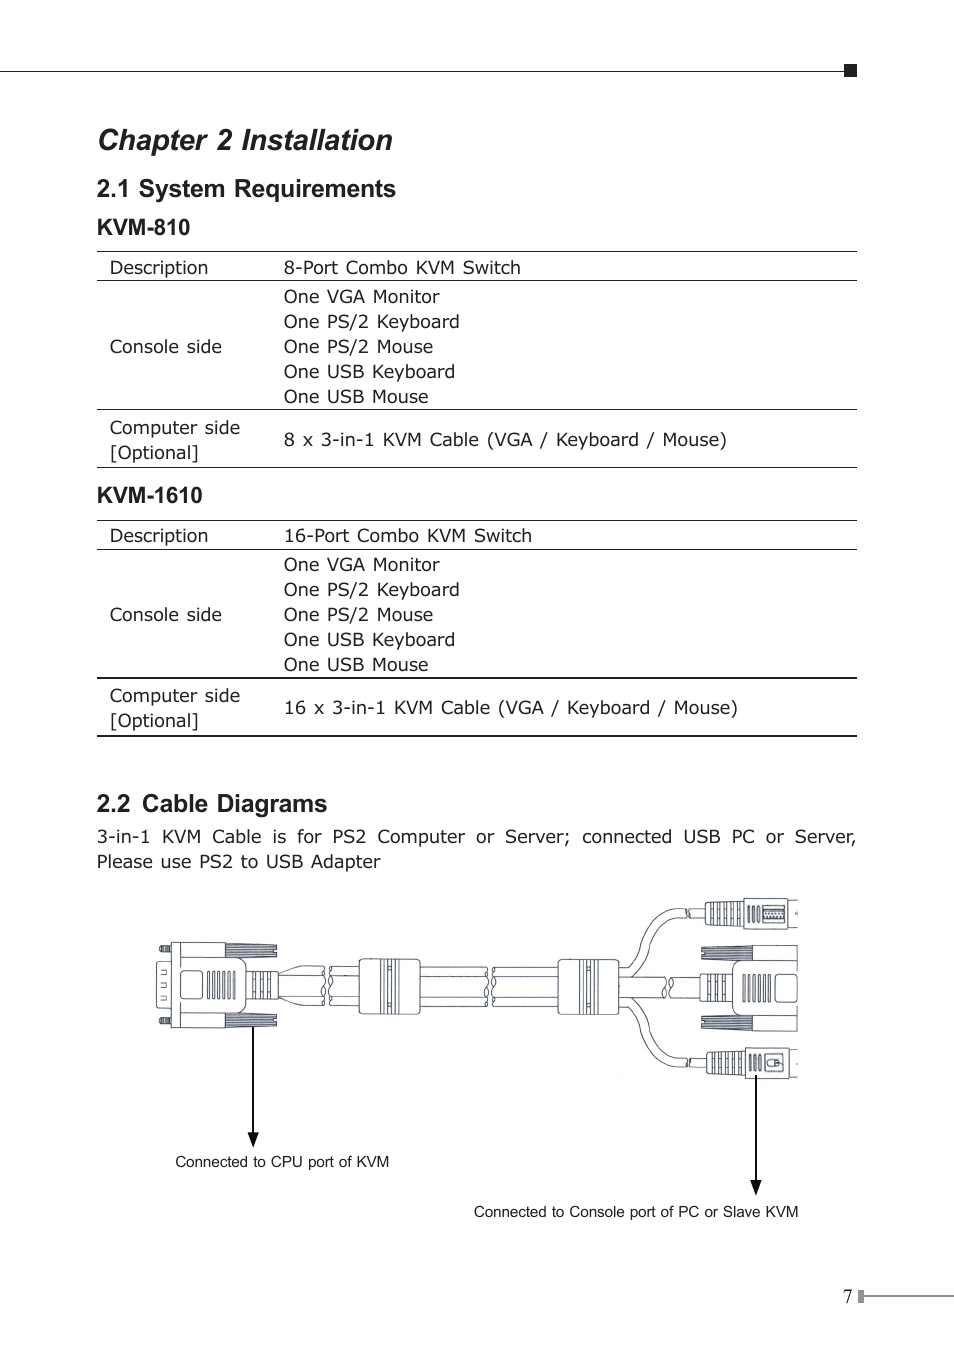 hight resolution of chapter 2 installation 1 system requirements 2 cable diagrams planet kvm 1610 user manual page 7 20